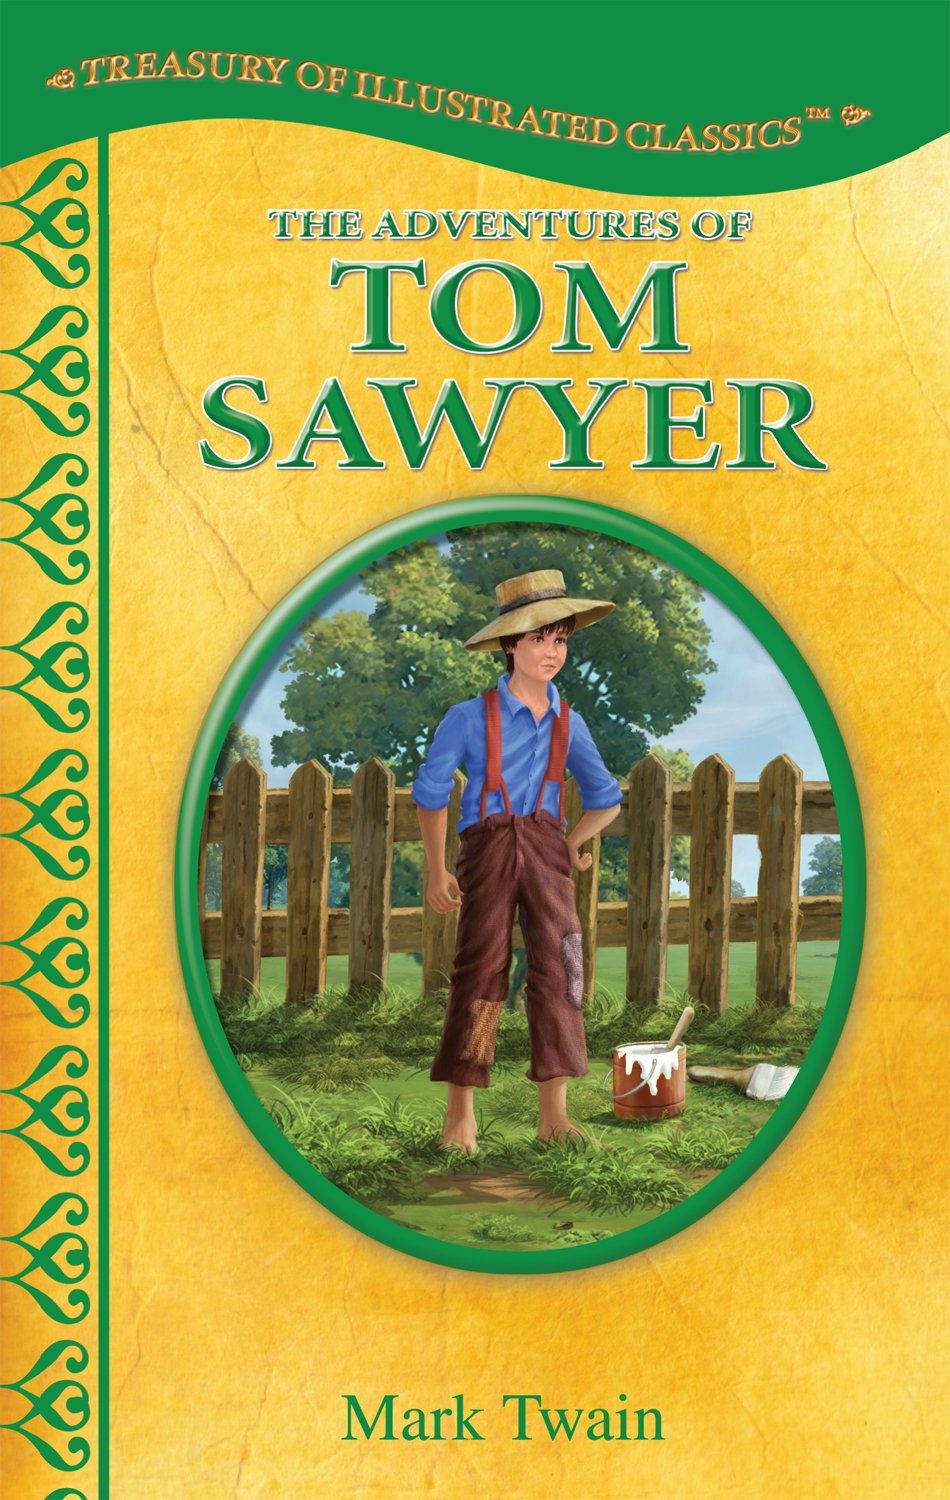 The Adventures of Tom Sawyer-Treasury of Illustrated Classics Storybook  Collection (Illustrated Jacketed Hardcover): Mark Twain: 9780766633414:  Amazon.com: ...